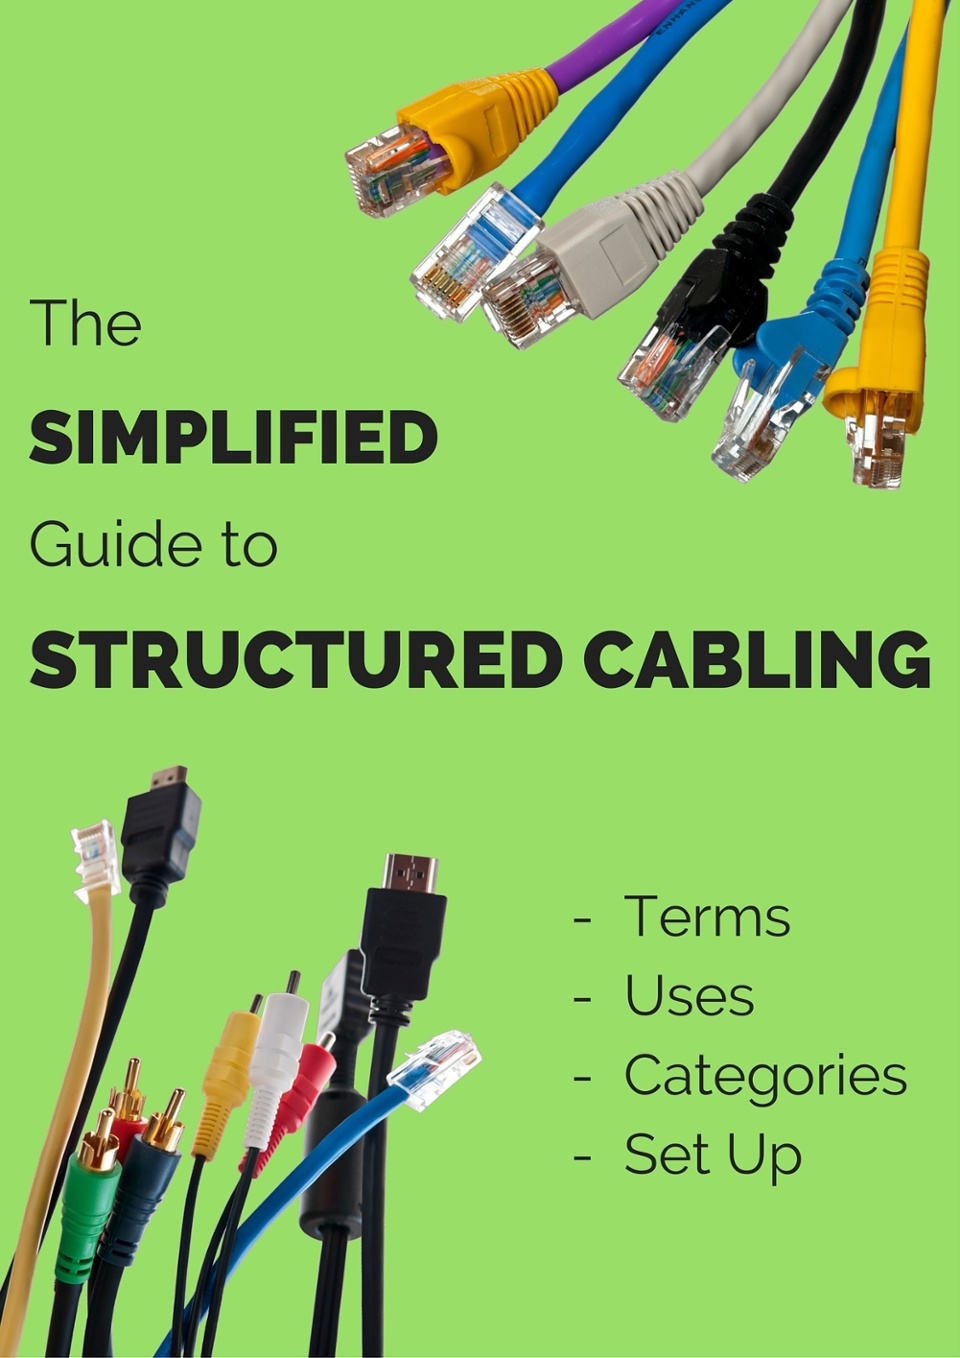 Simplified Structured Cabling Guide Lp Form Netqmedia Wiring On Design What Is Das